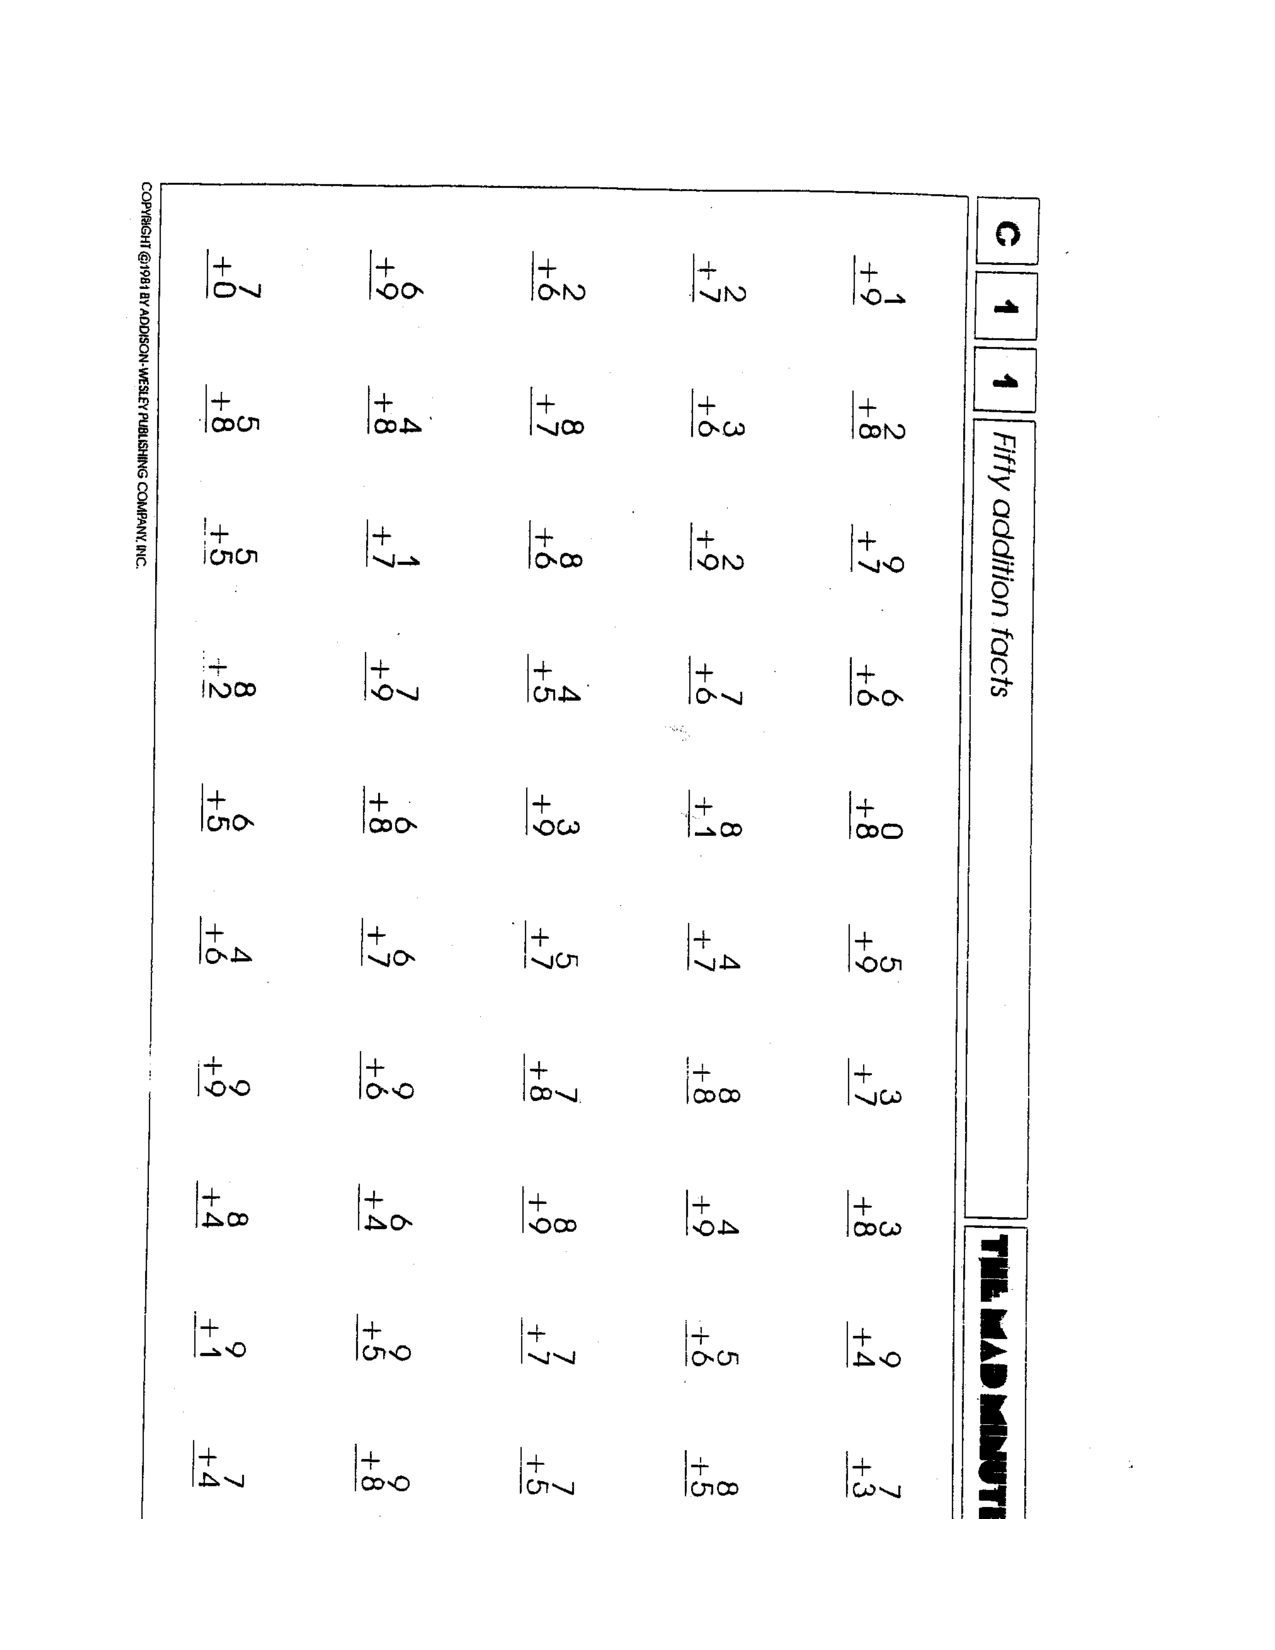 Worksheet 4th Grade Division Practice free 4th grade math worksheets division tables related facts 10s 2 for fourth doc